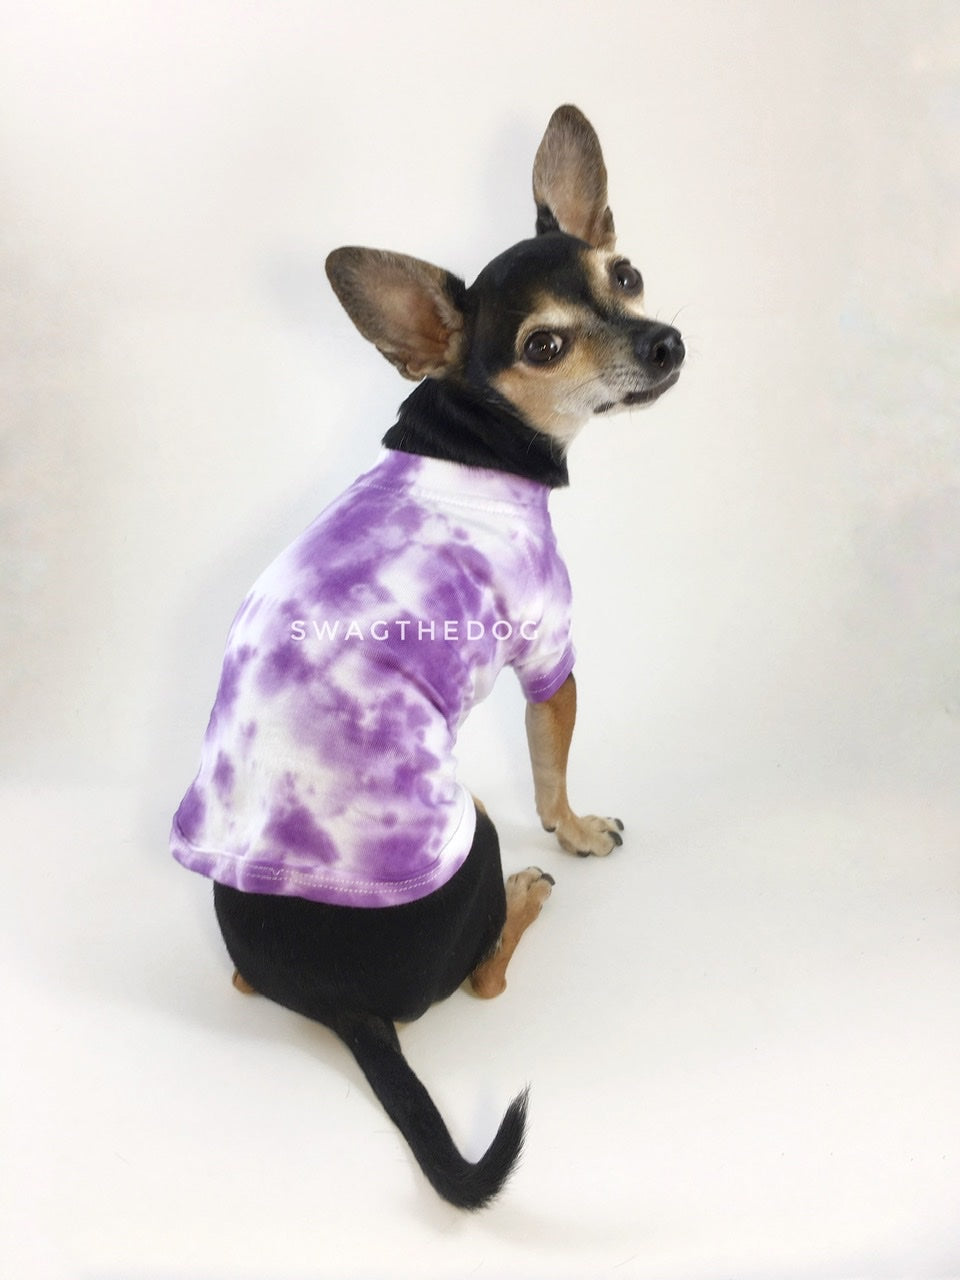 Swagadelic Purple Tie Dye Tee - Cute Chihuahua named Hugo in sitting position with his back towards the camera and looking back, wearing the hand tie-dyed tee with Purple